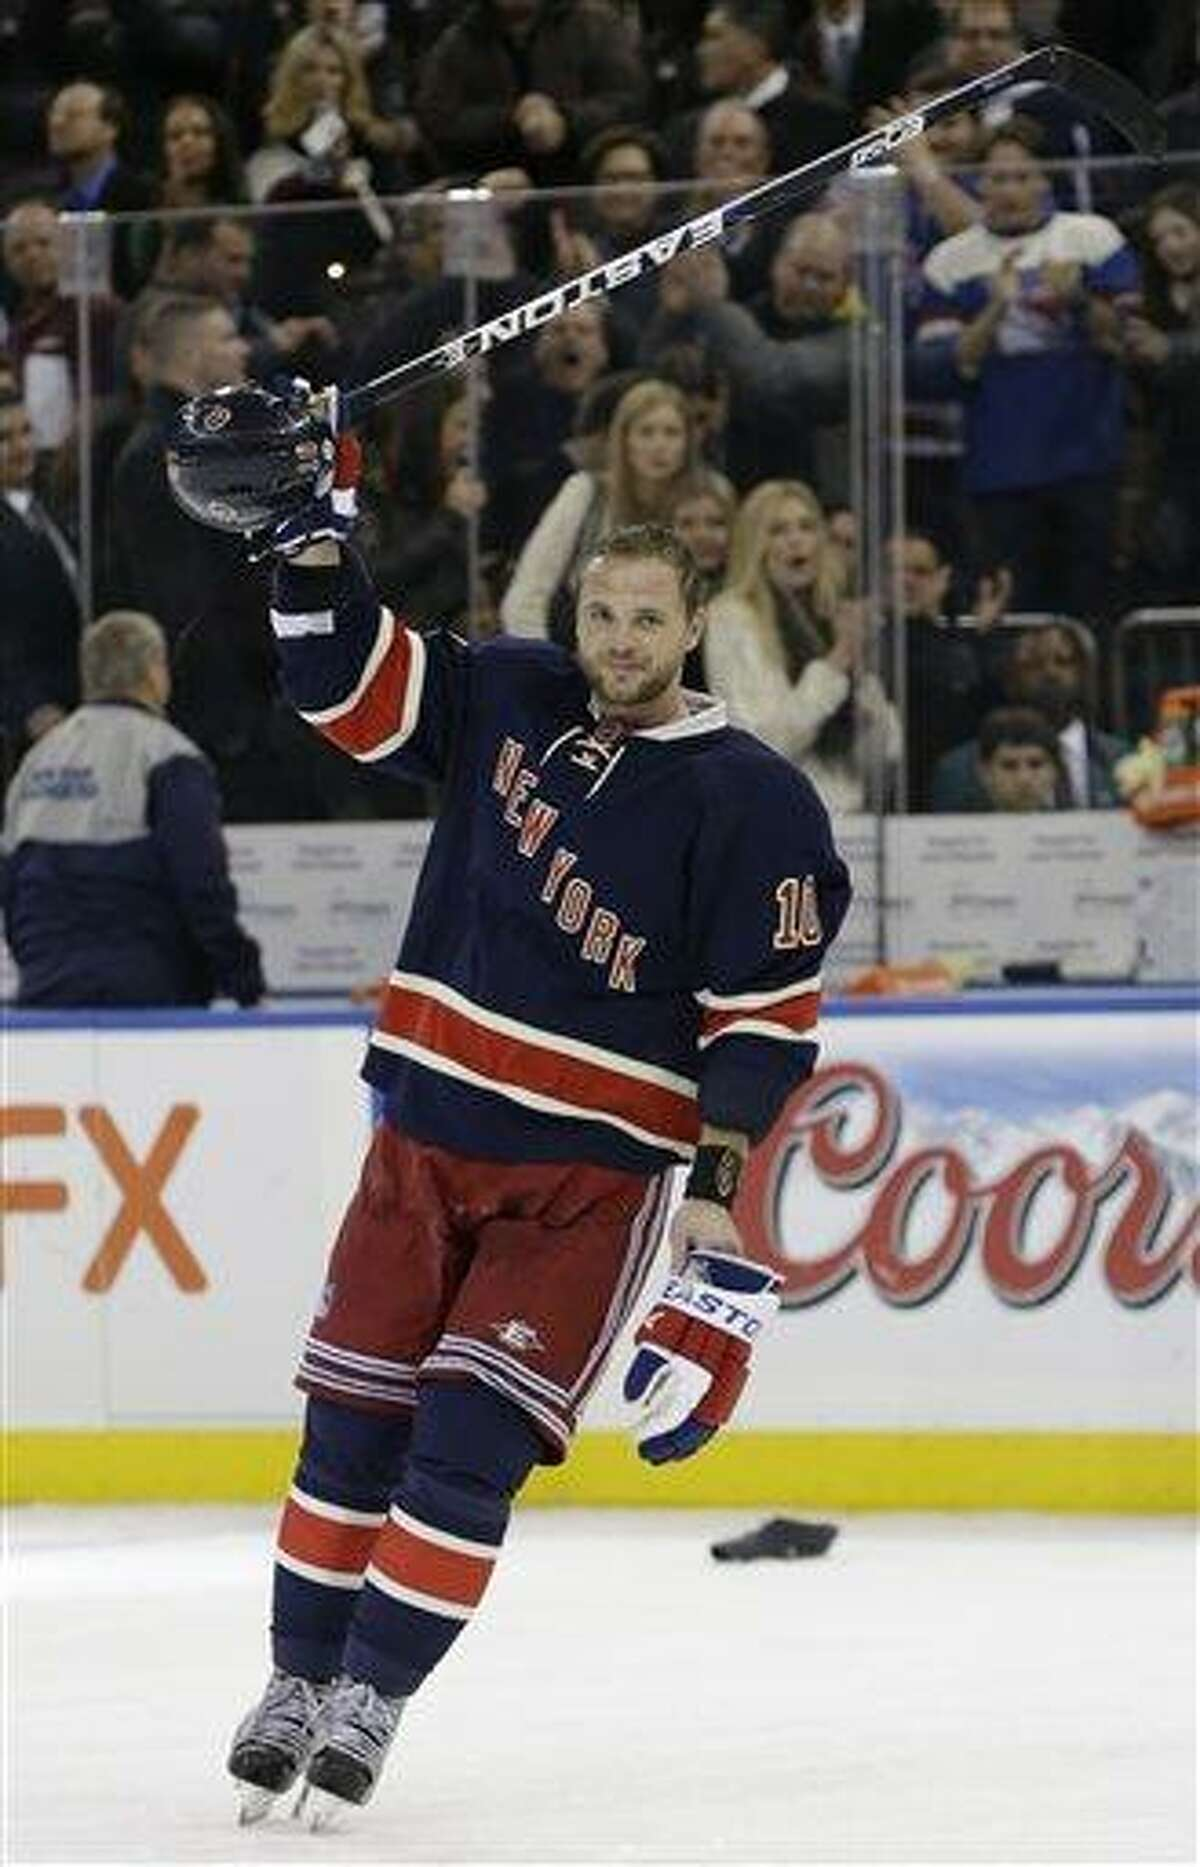 New York Rangers right wing Marian Gaborik (10) acknowledges the crowd after an overtime goal for a hat trick in the Rangers 4-3 overtime victory over the Boston Bruins in an NHL hockey game at Madison Square Garden in New York, Wednesday, Jan. 23, 2013. (AP Photo/Kathy Willens)